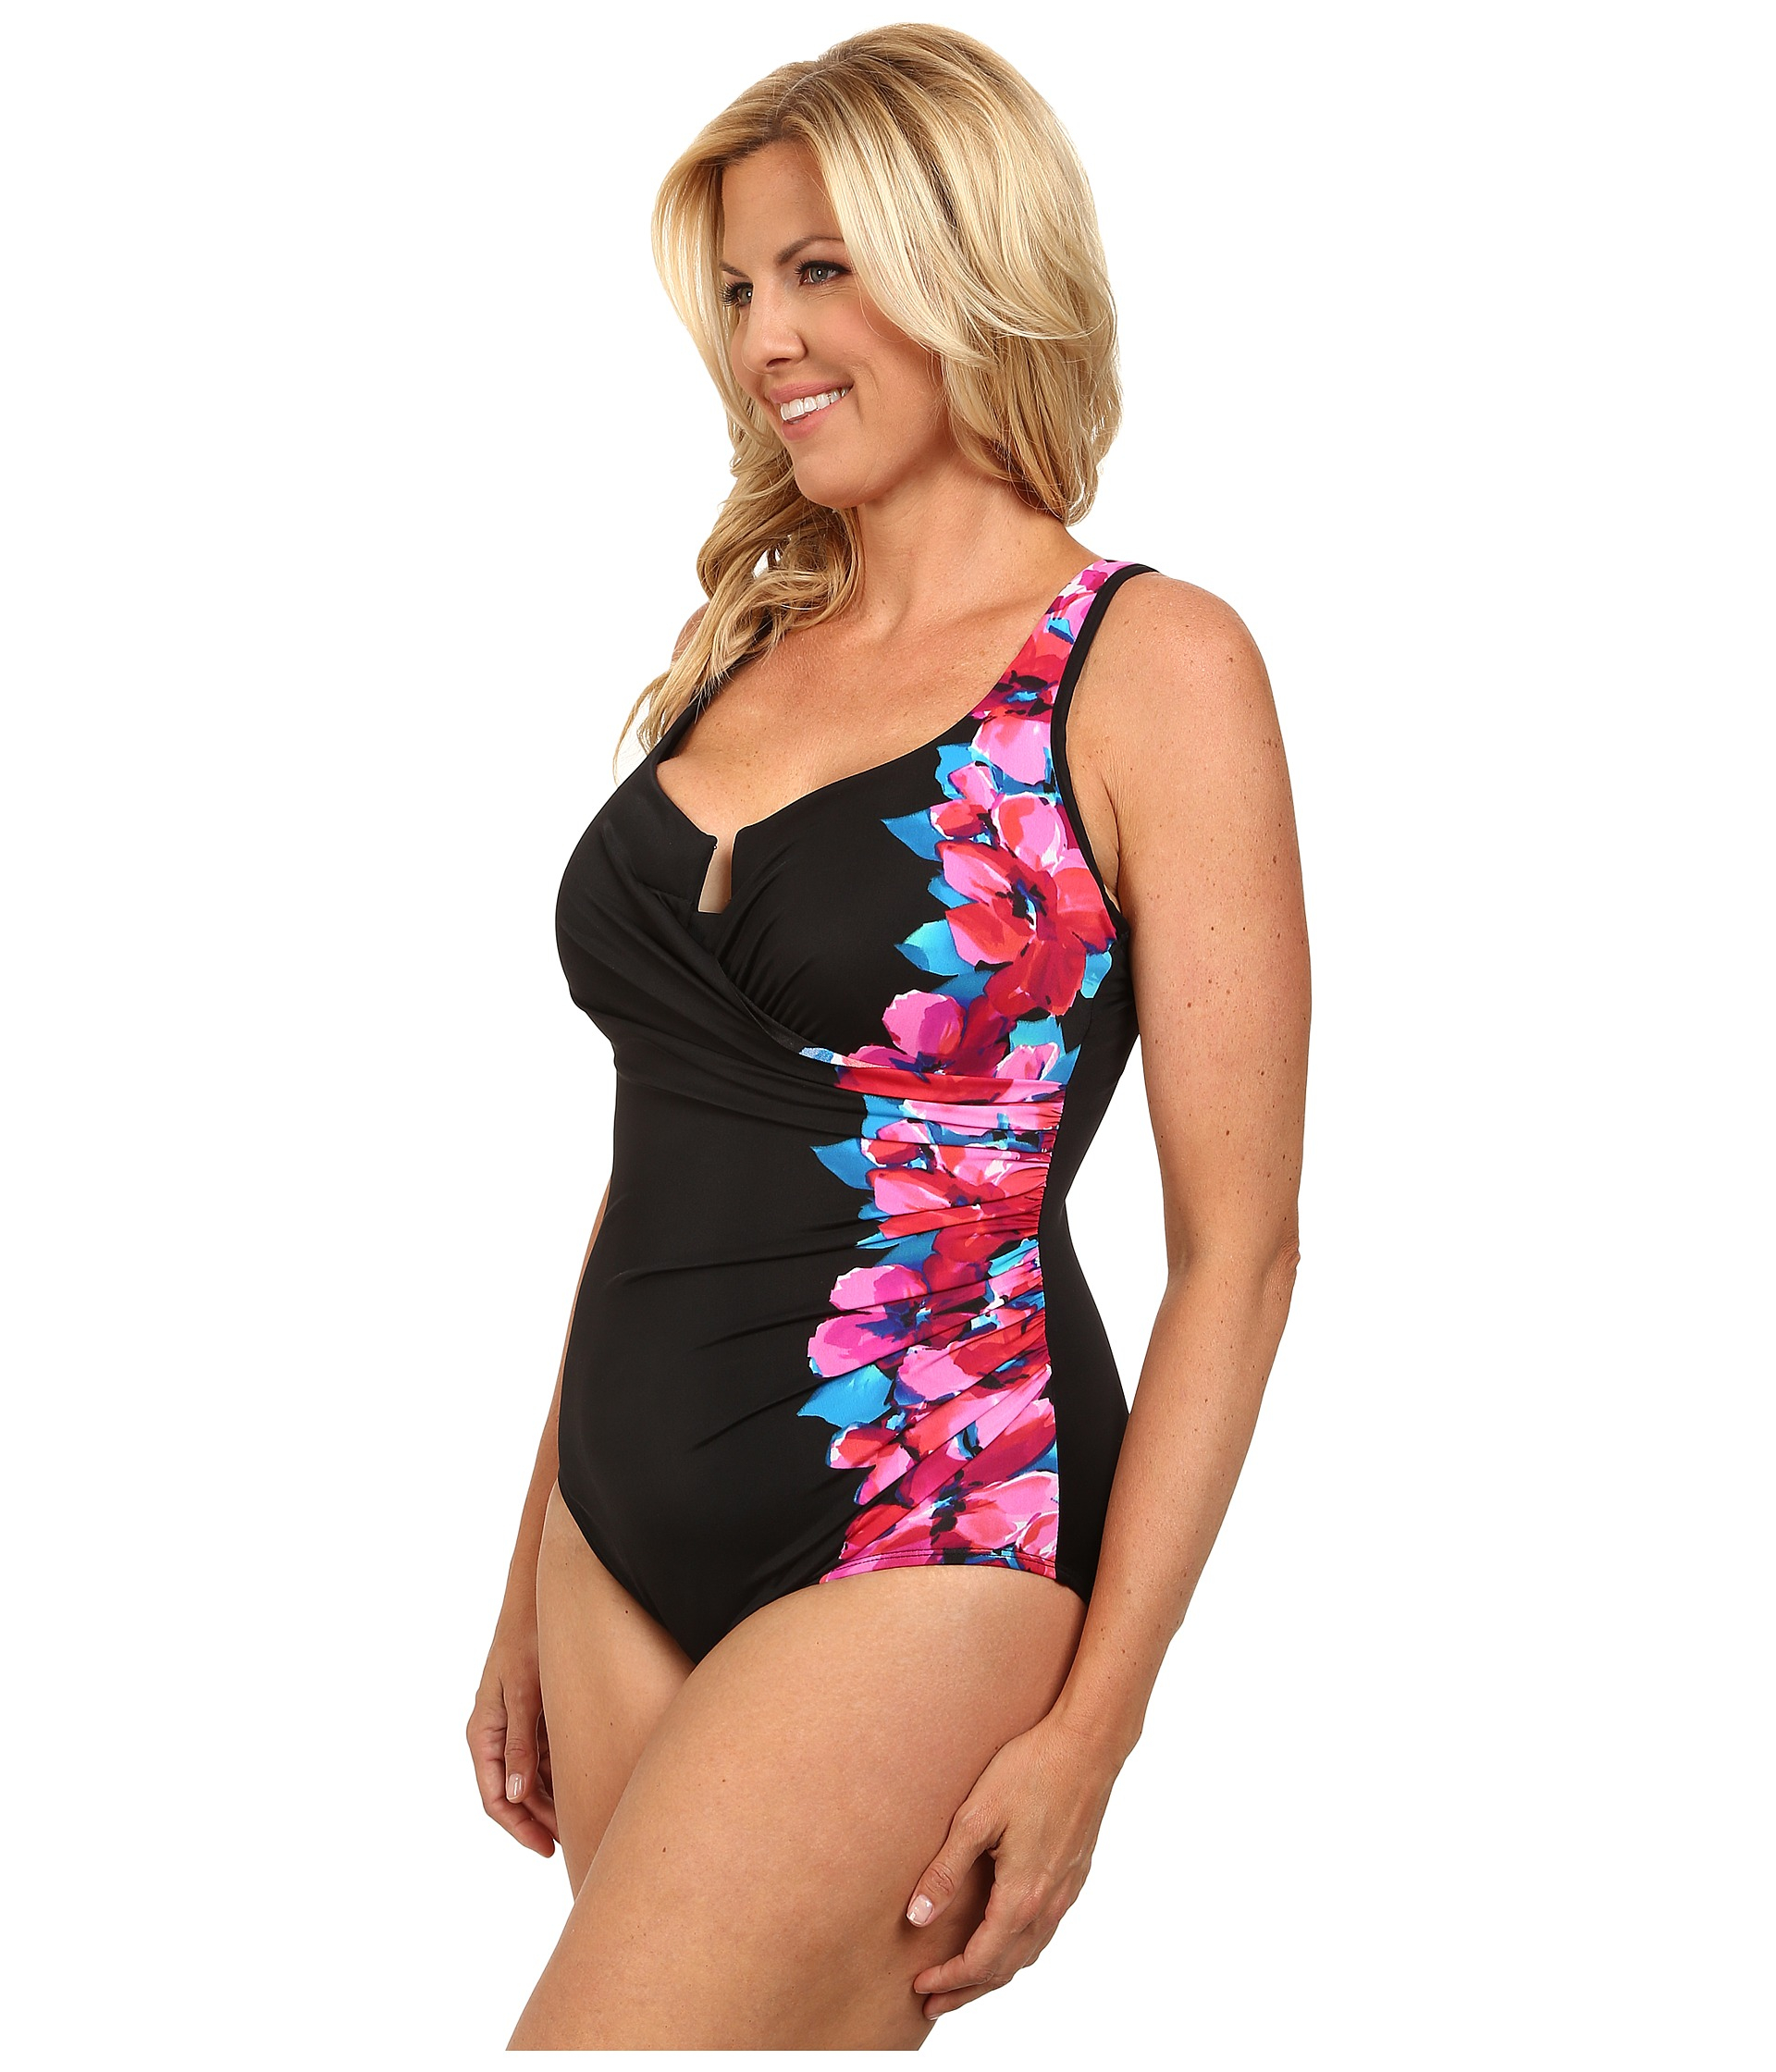 b13401a4985 Miraclesuit Plus Size Garland Escape Swimsuit in Pink - Lyst